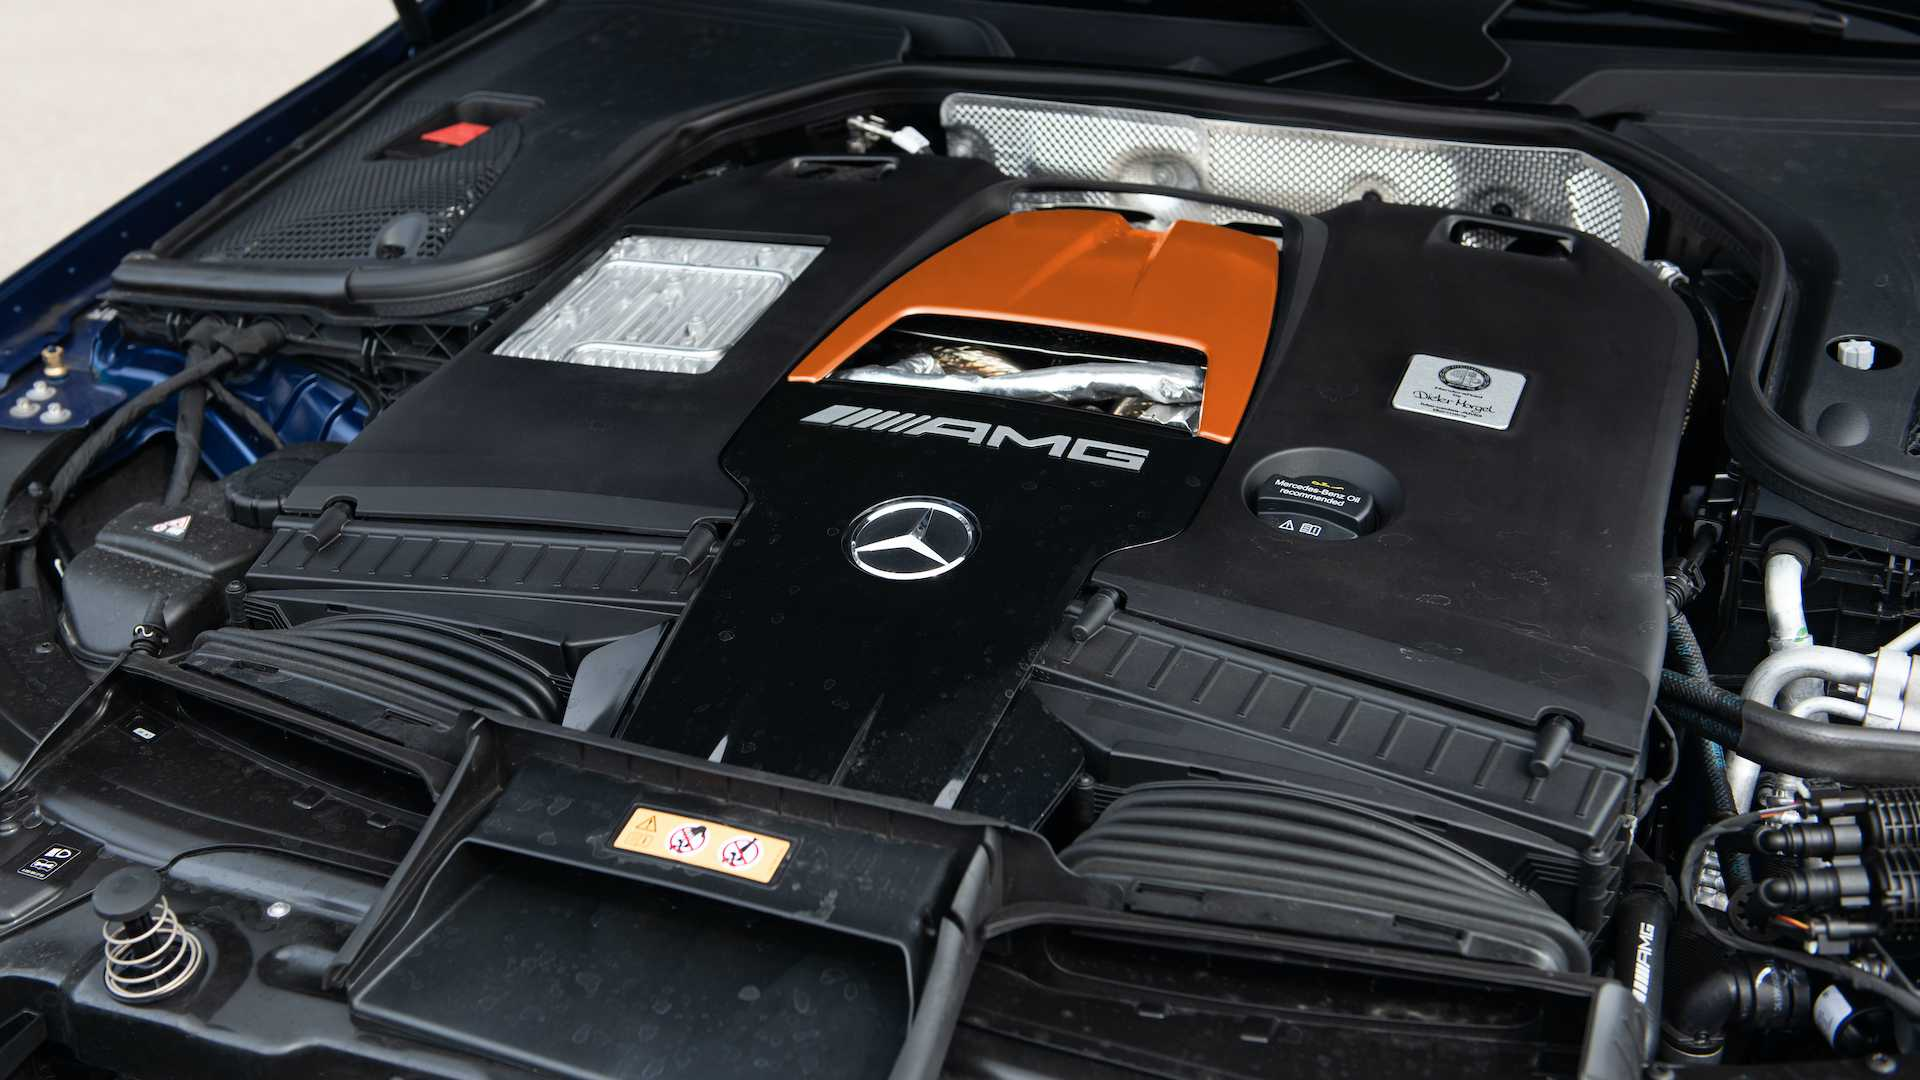 2017 - [Mercedes-AMG] GT4 - Page 7 Mercedes-amg-gt-63-upgrade-by-g-power